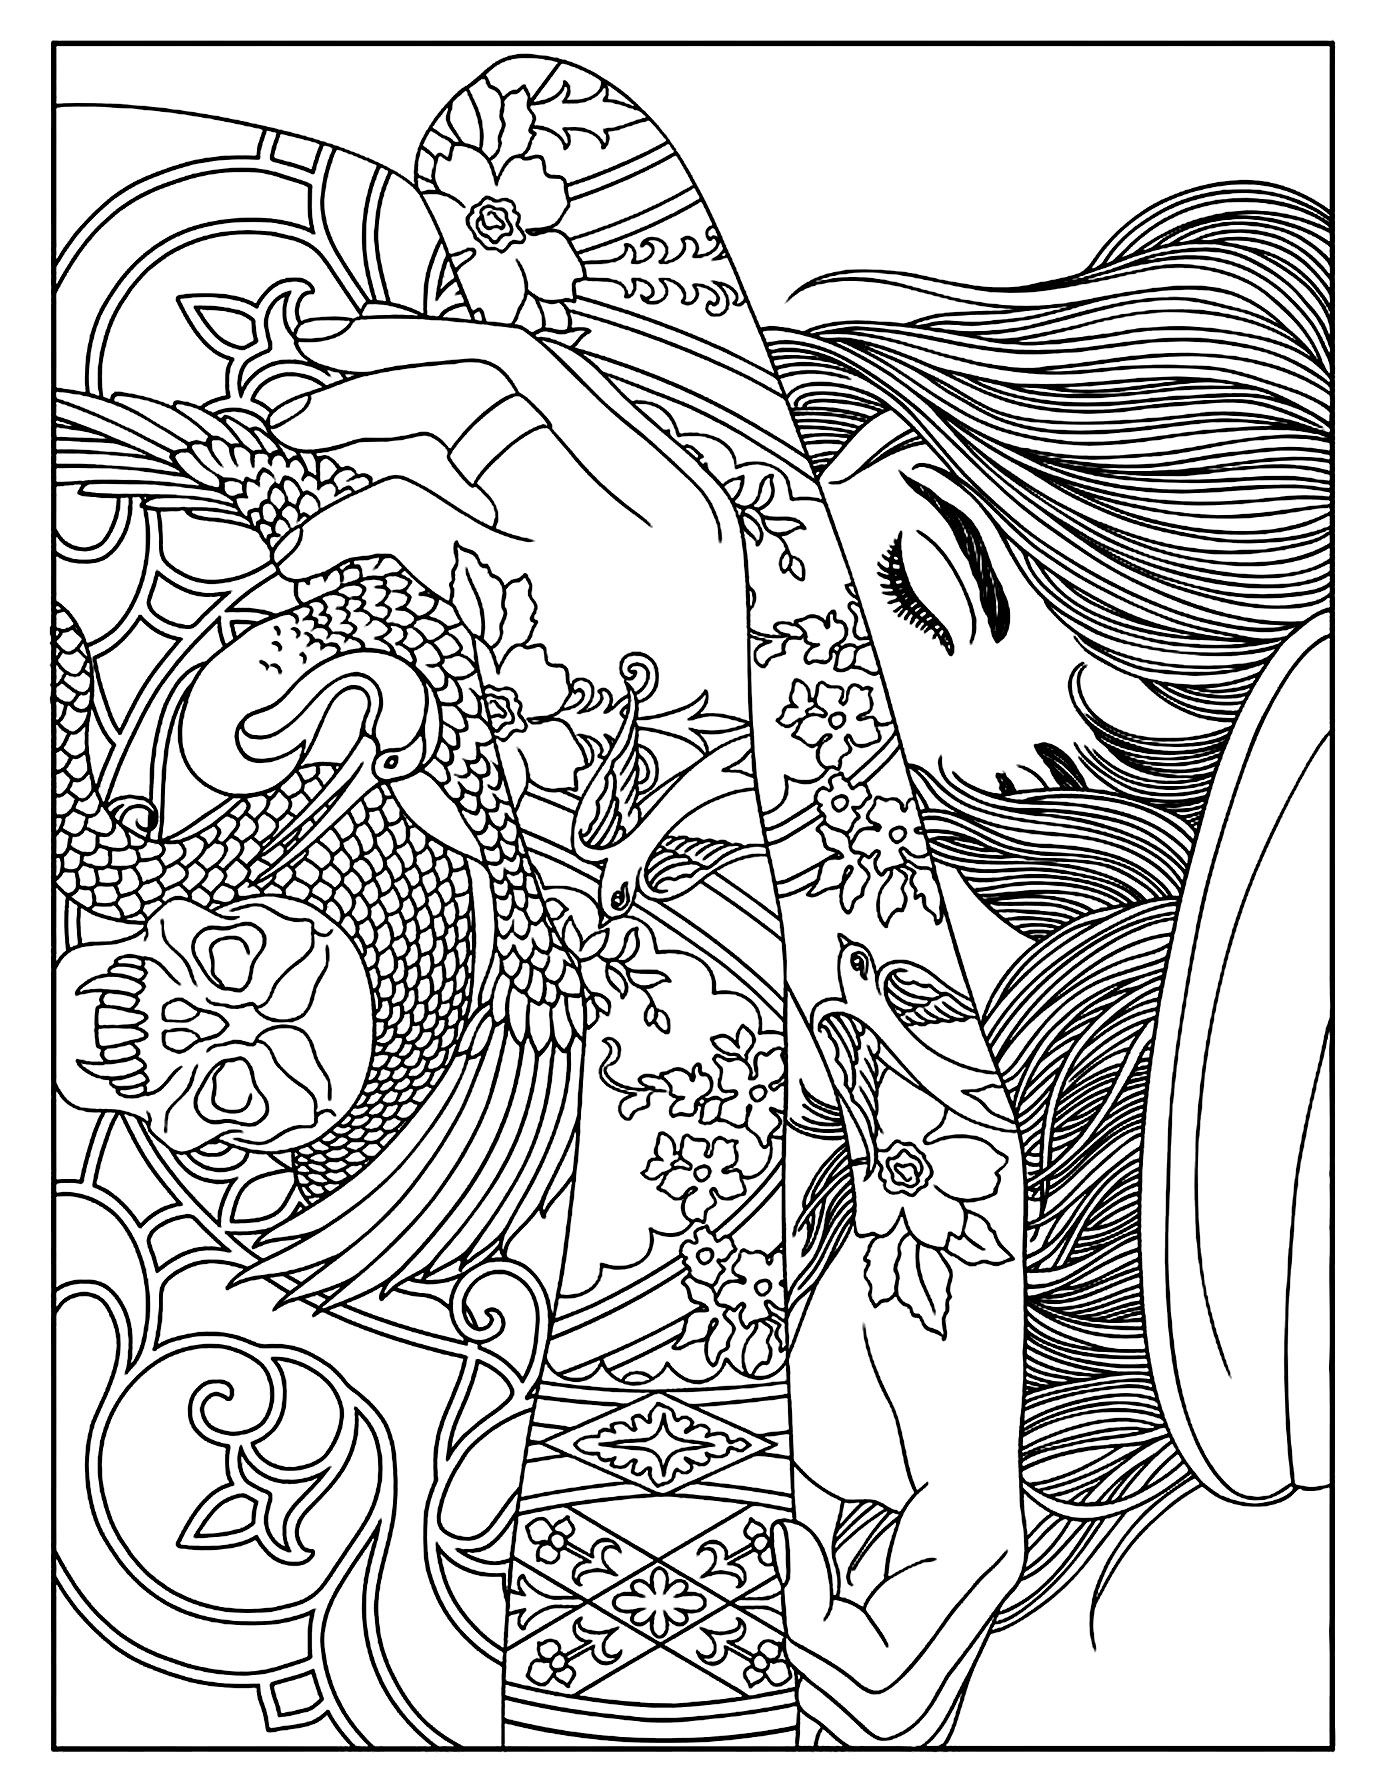 Coloring Page Adults Art Drawing Zen Relaxing Antistress Tv Series Fan